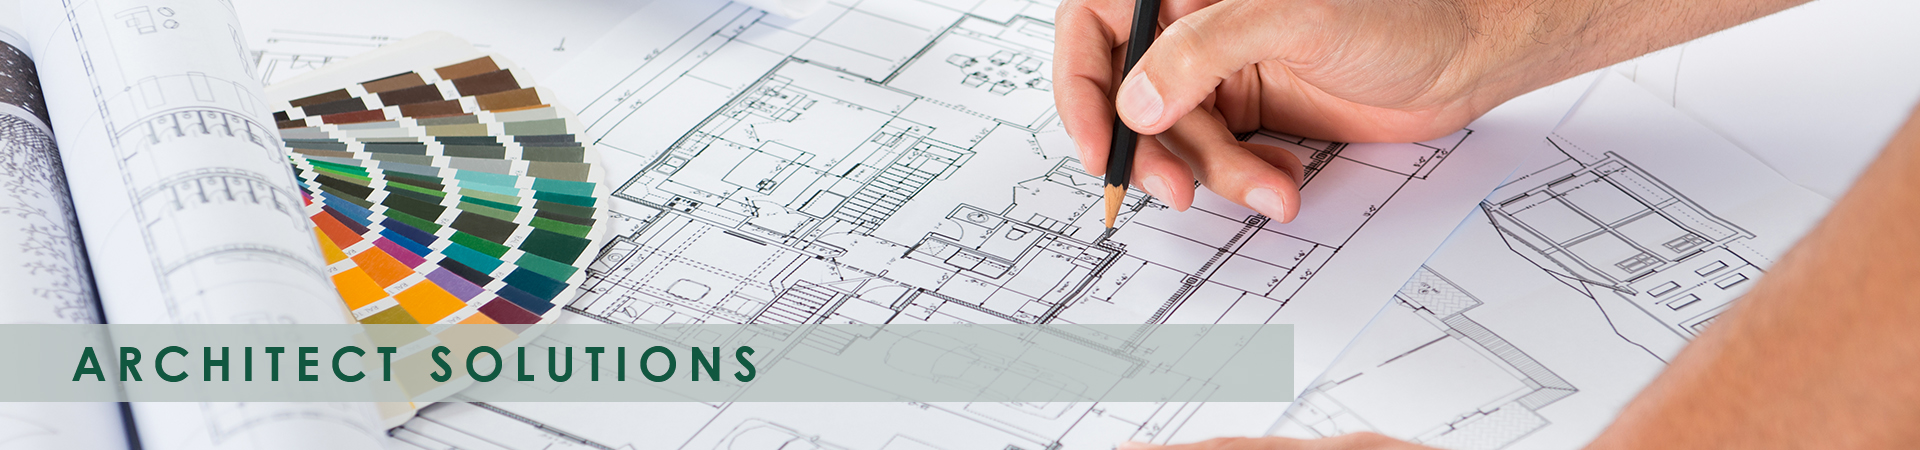 architect-solutions-page-banner